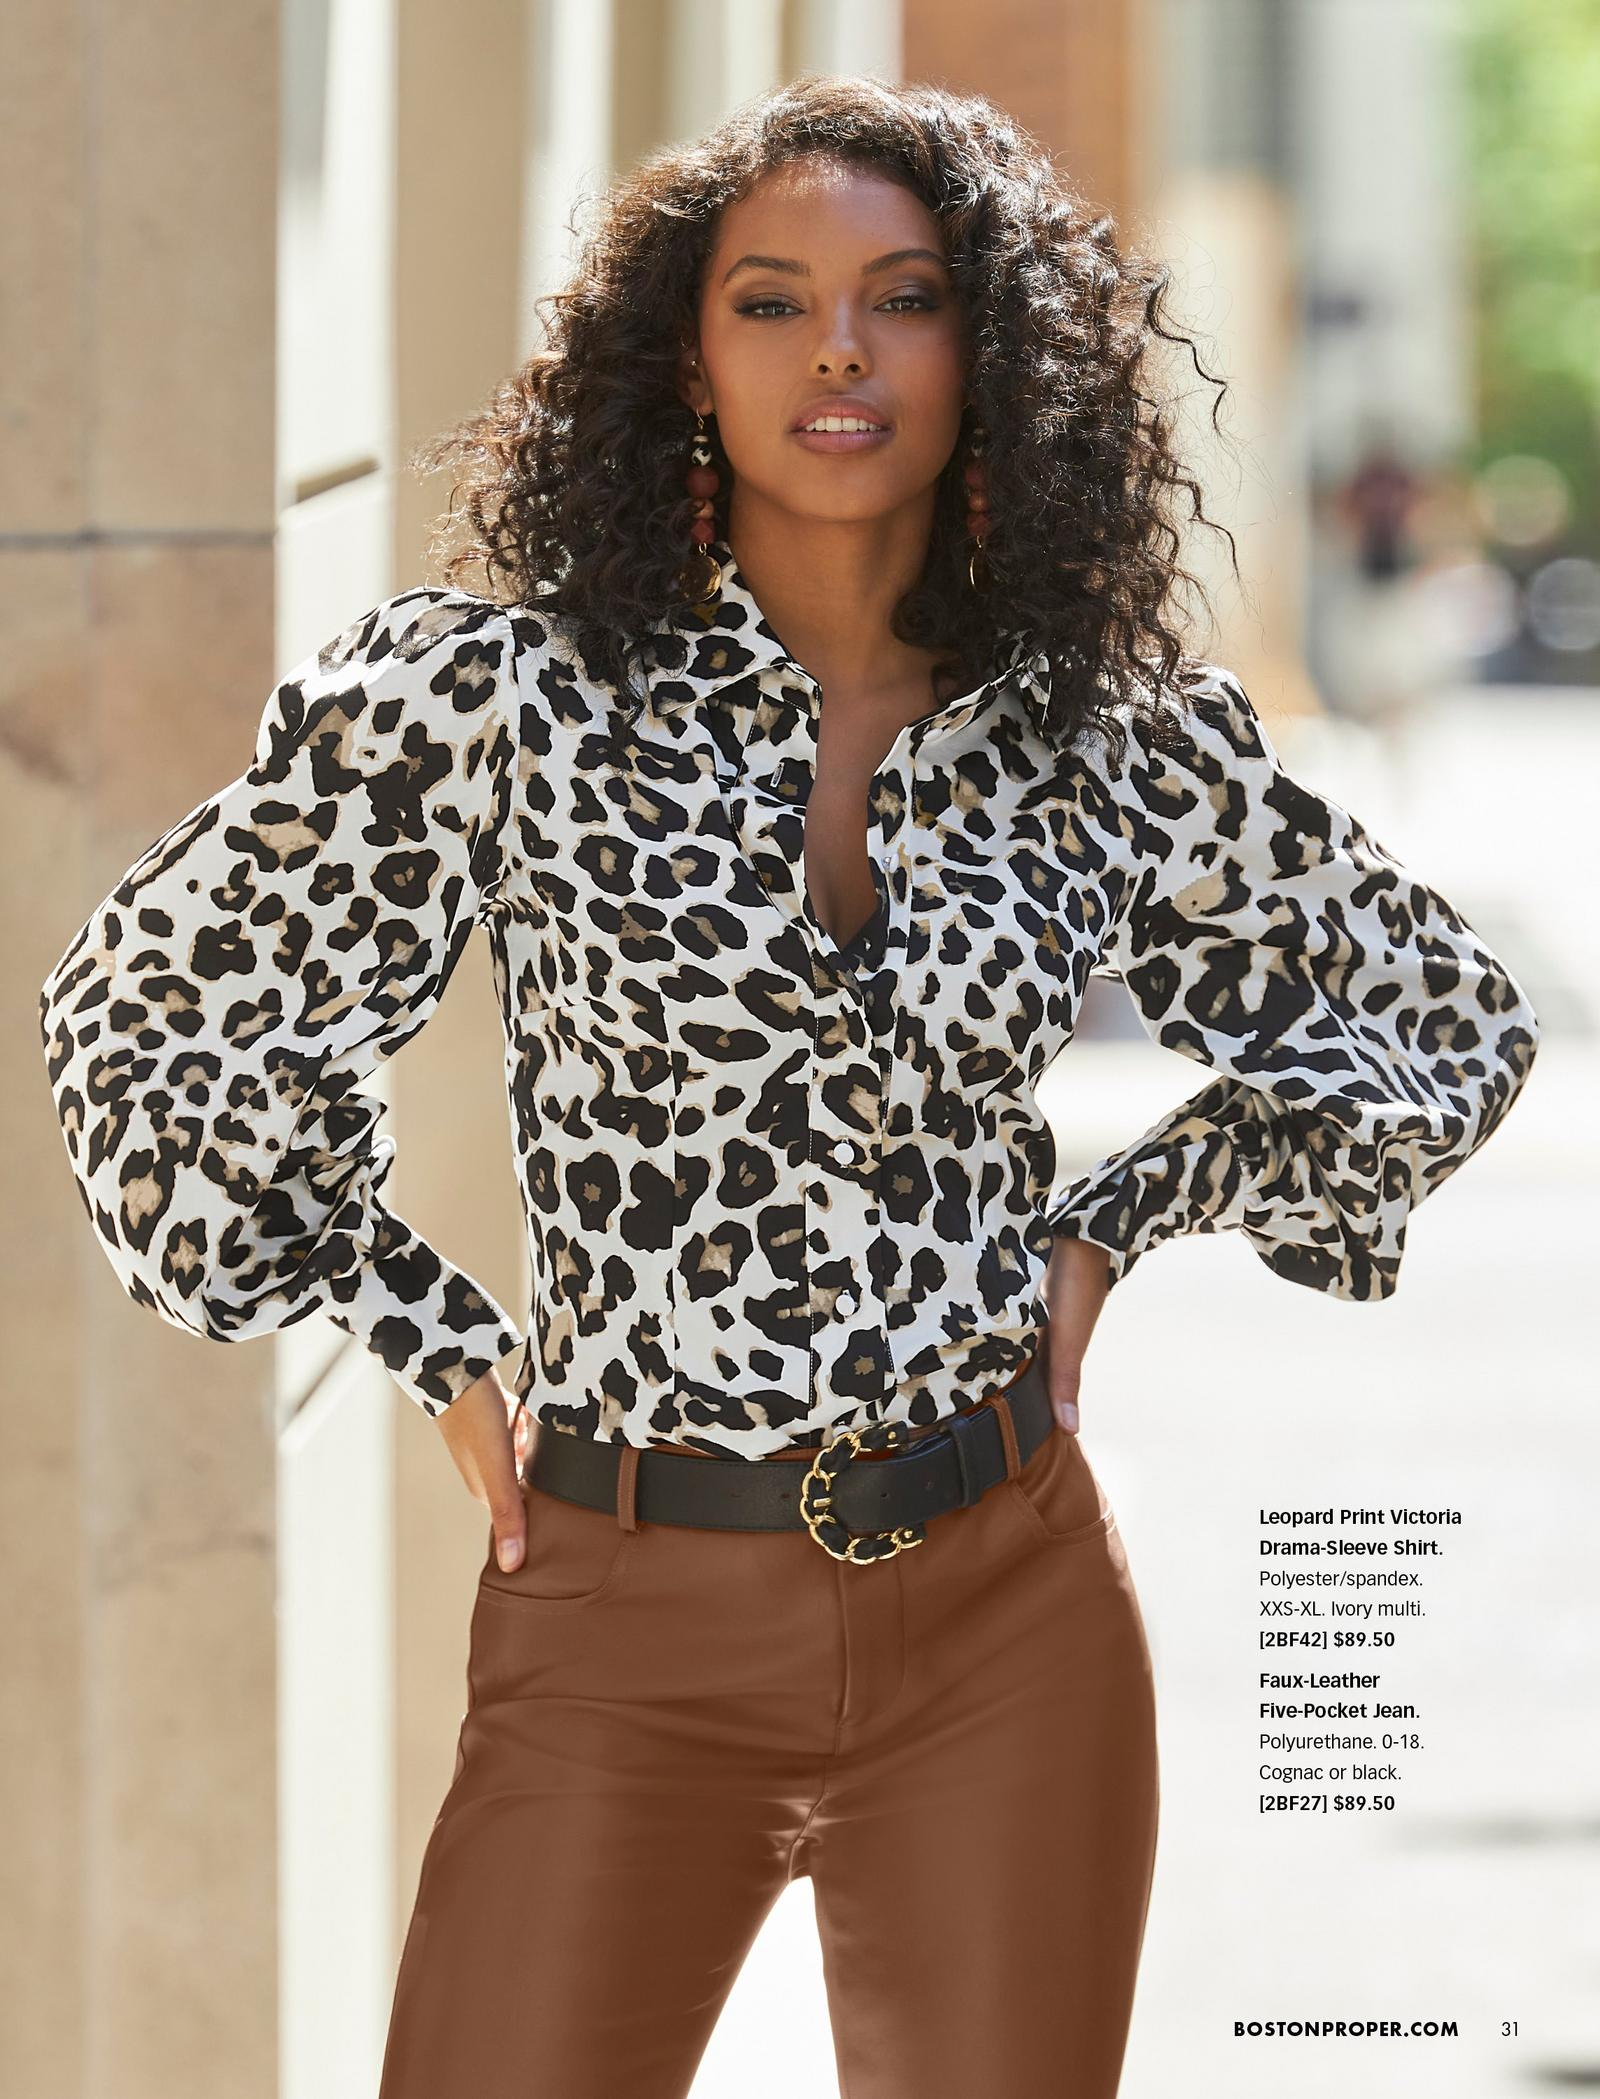 model wearing a leopard print drama-sleeve button-down shirt, black belt, and brown faux-leather jeans.